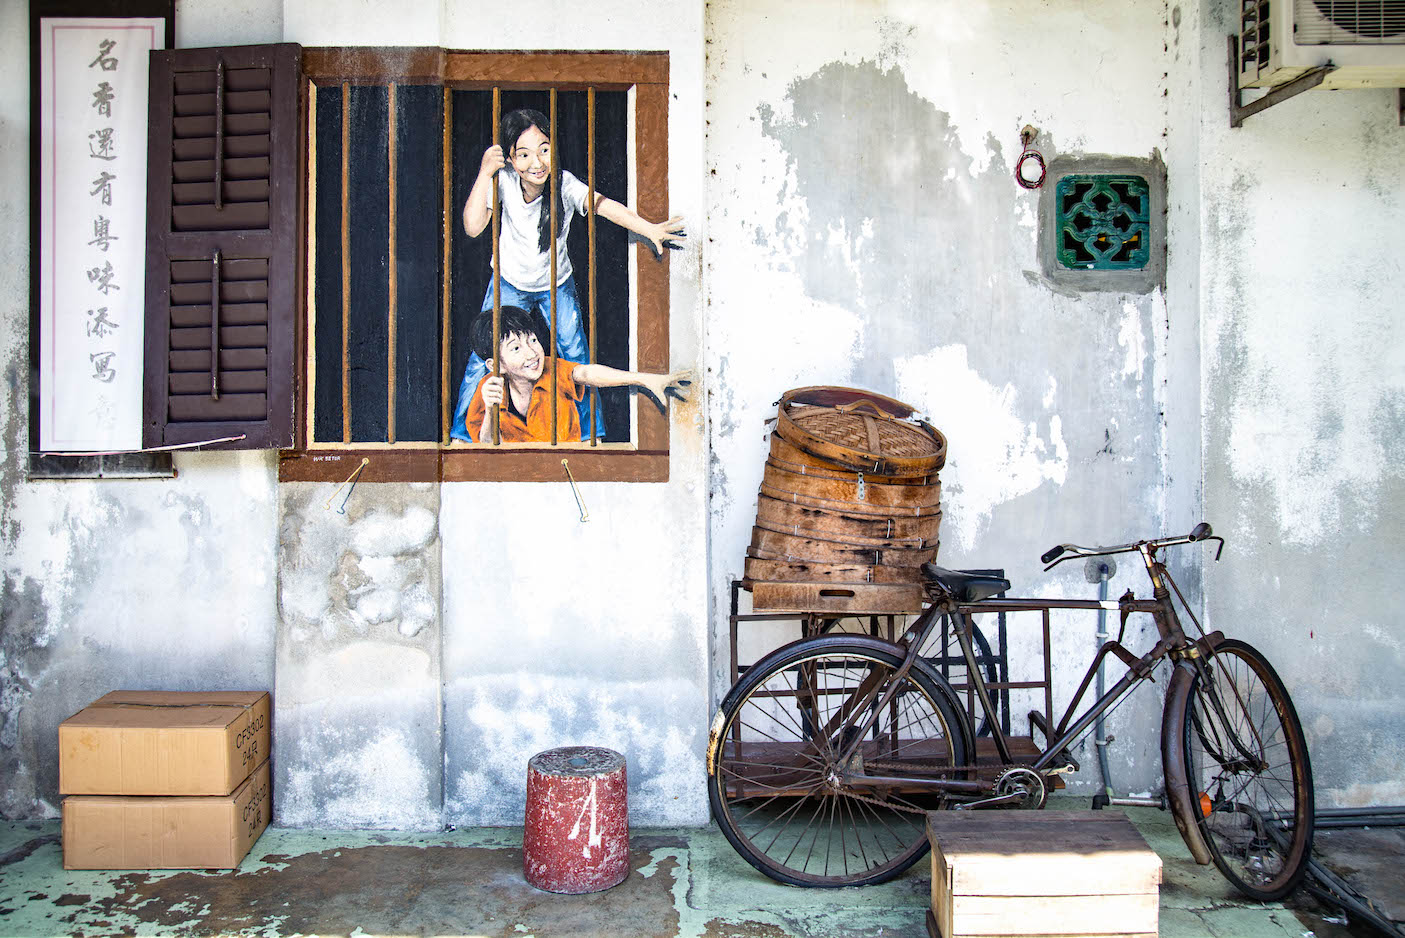 Penang-Graffiti-moments of yugen